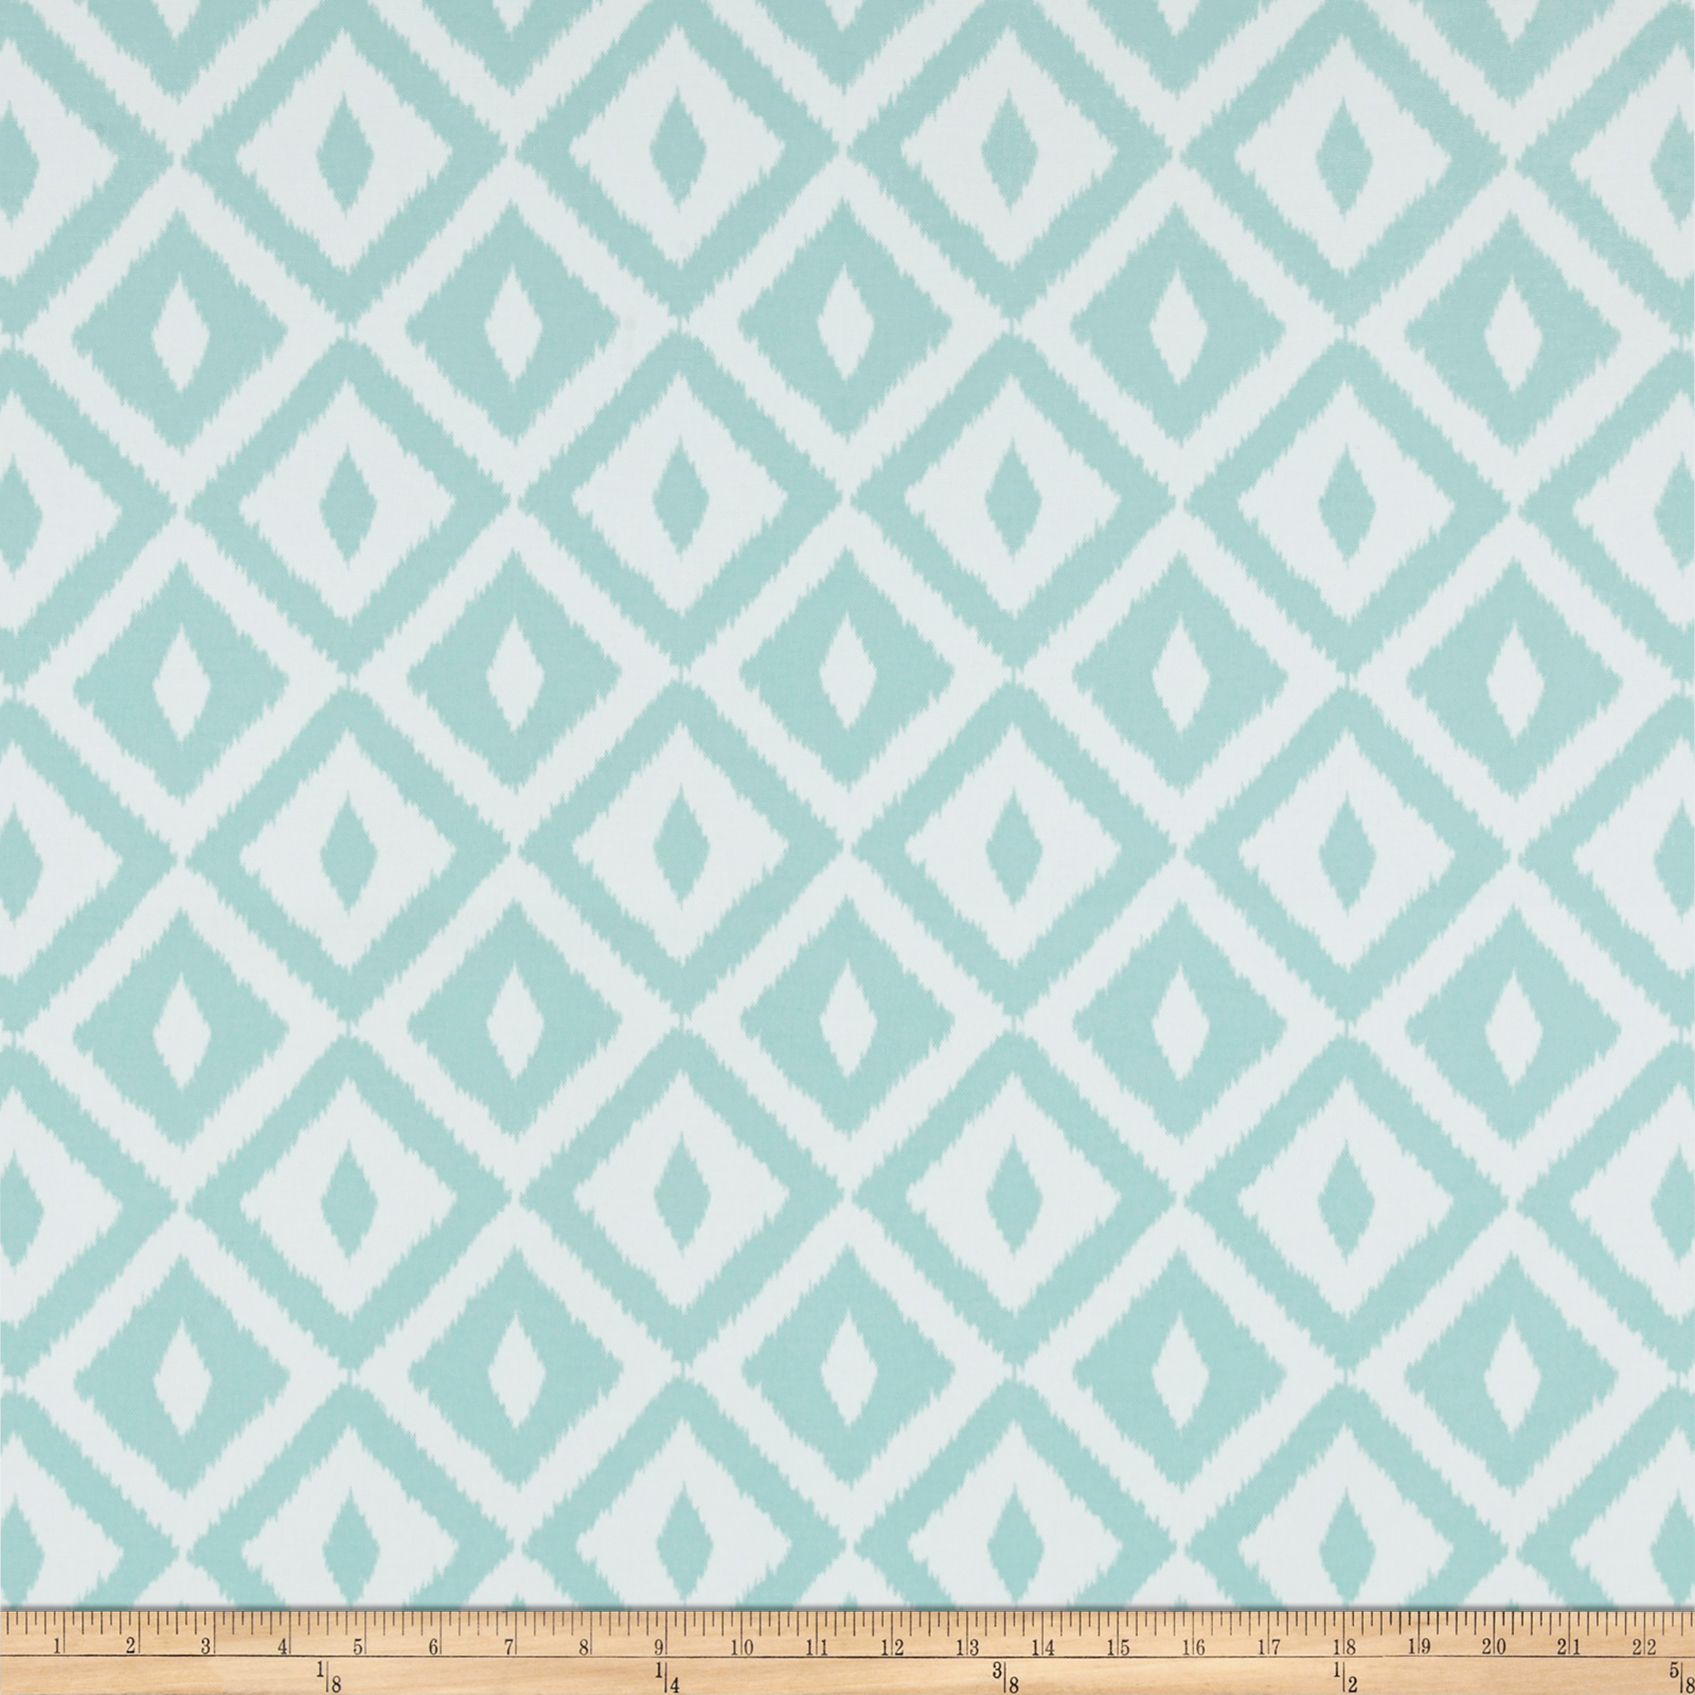 Terrasol Outdoor Aztec Mist Fabric by Tempro in USA